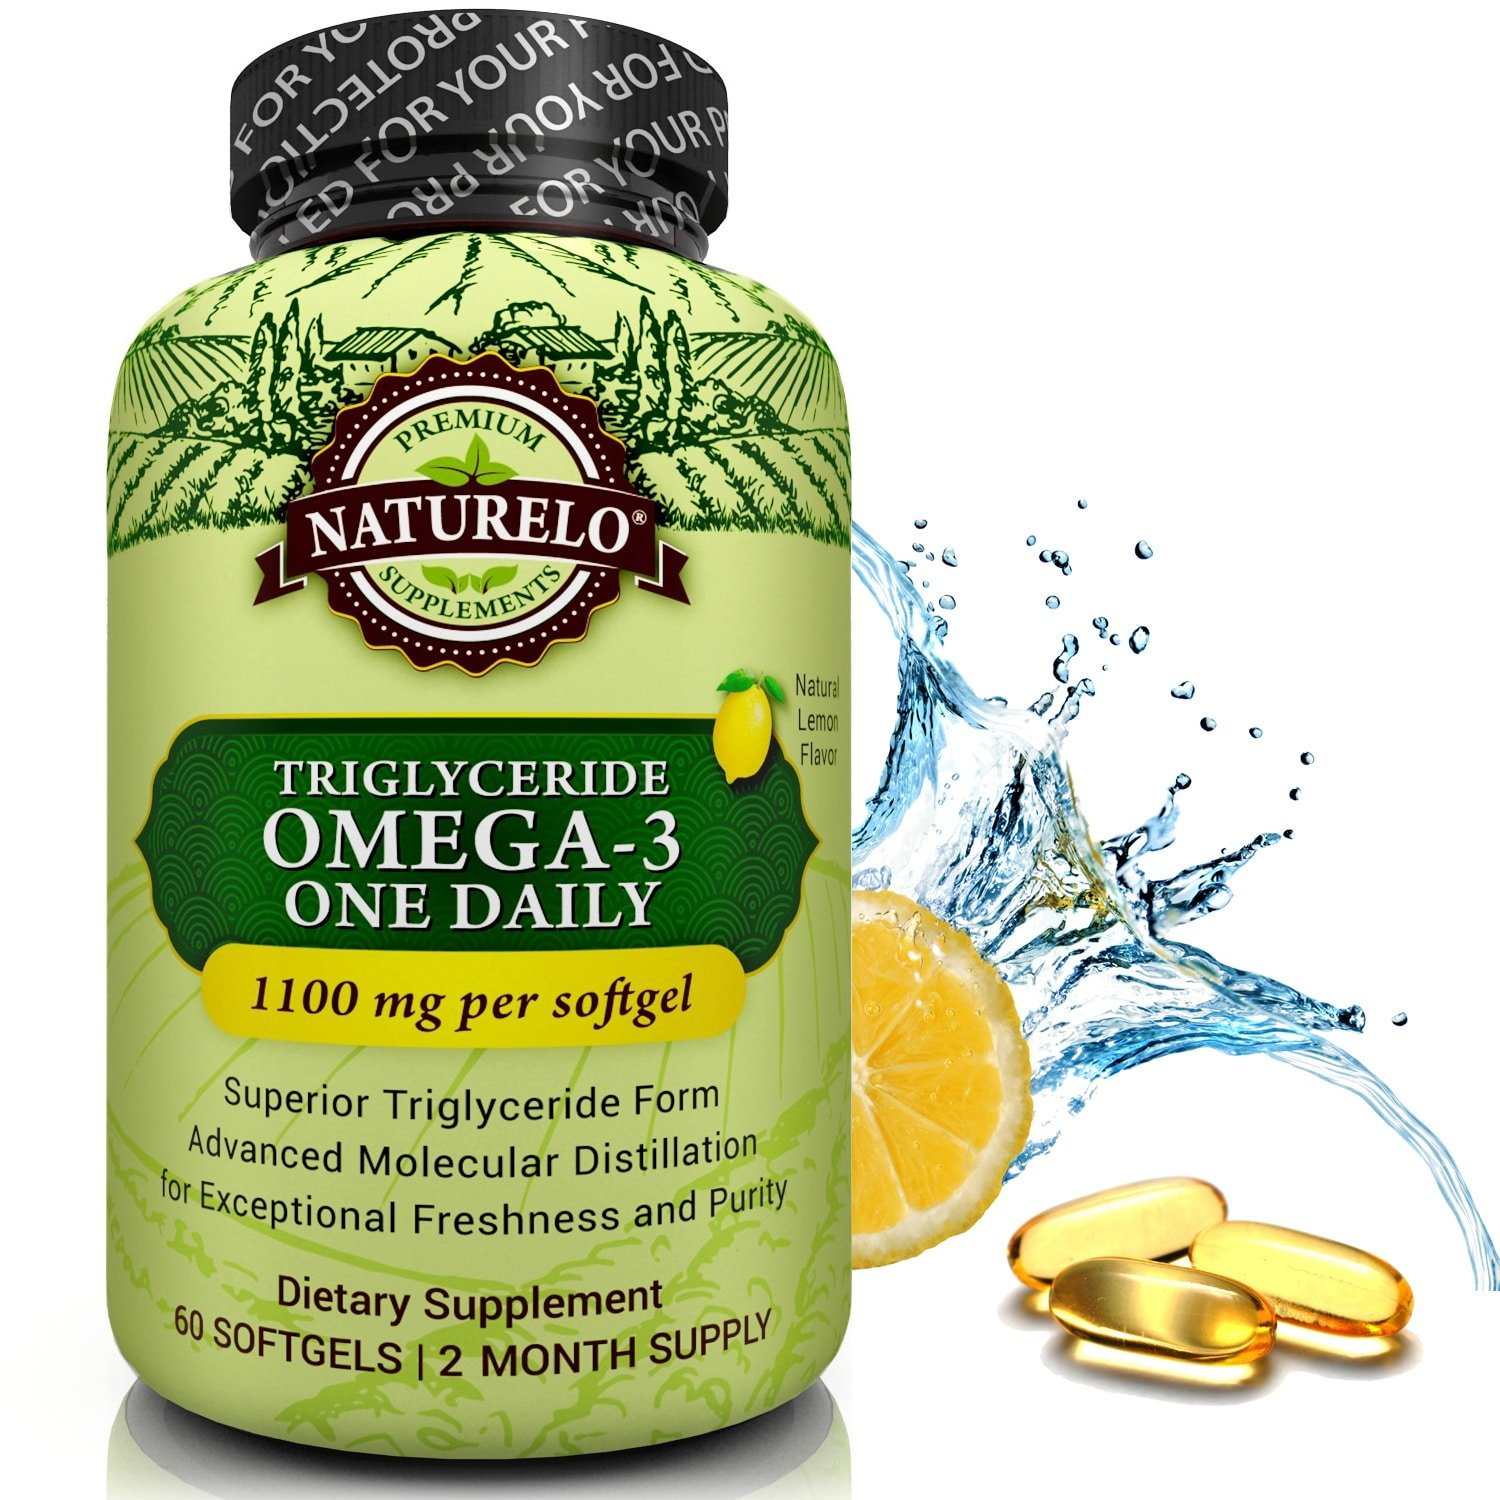 [24 Hour Sale] NATURELO Premium Omega-3 Fish Oil - 1100 mg Triglyceride Omega 3 - High Strength Burpless DHA EPA Supplement - Best for Brain Heart Joint Health - 60 Softgels   2 Month Supply